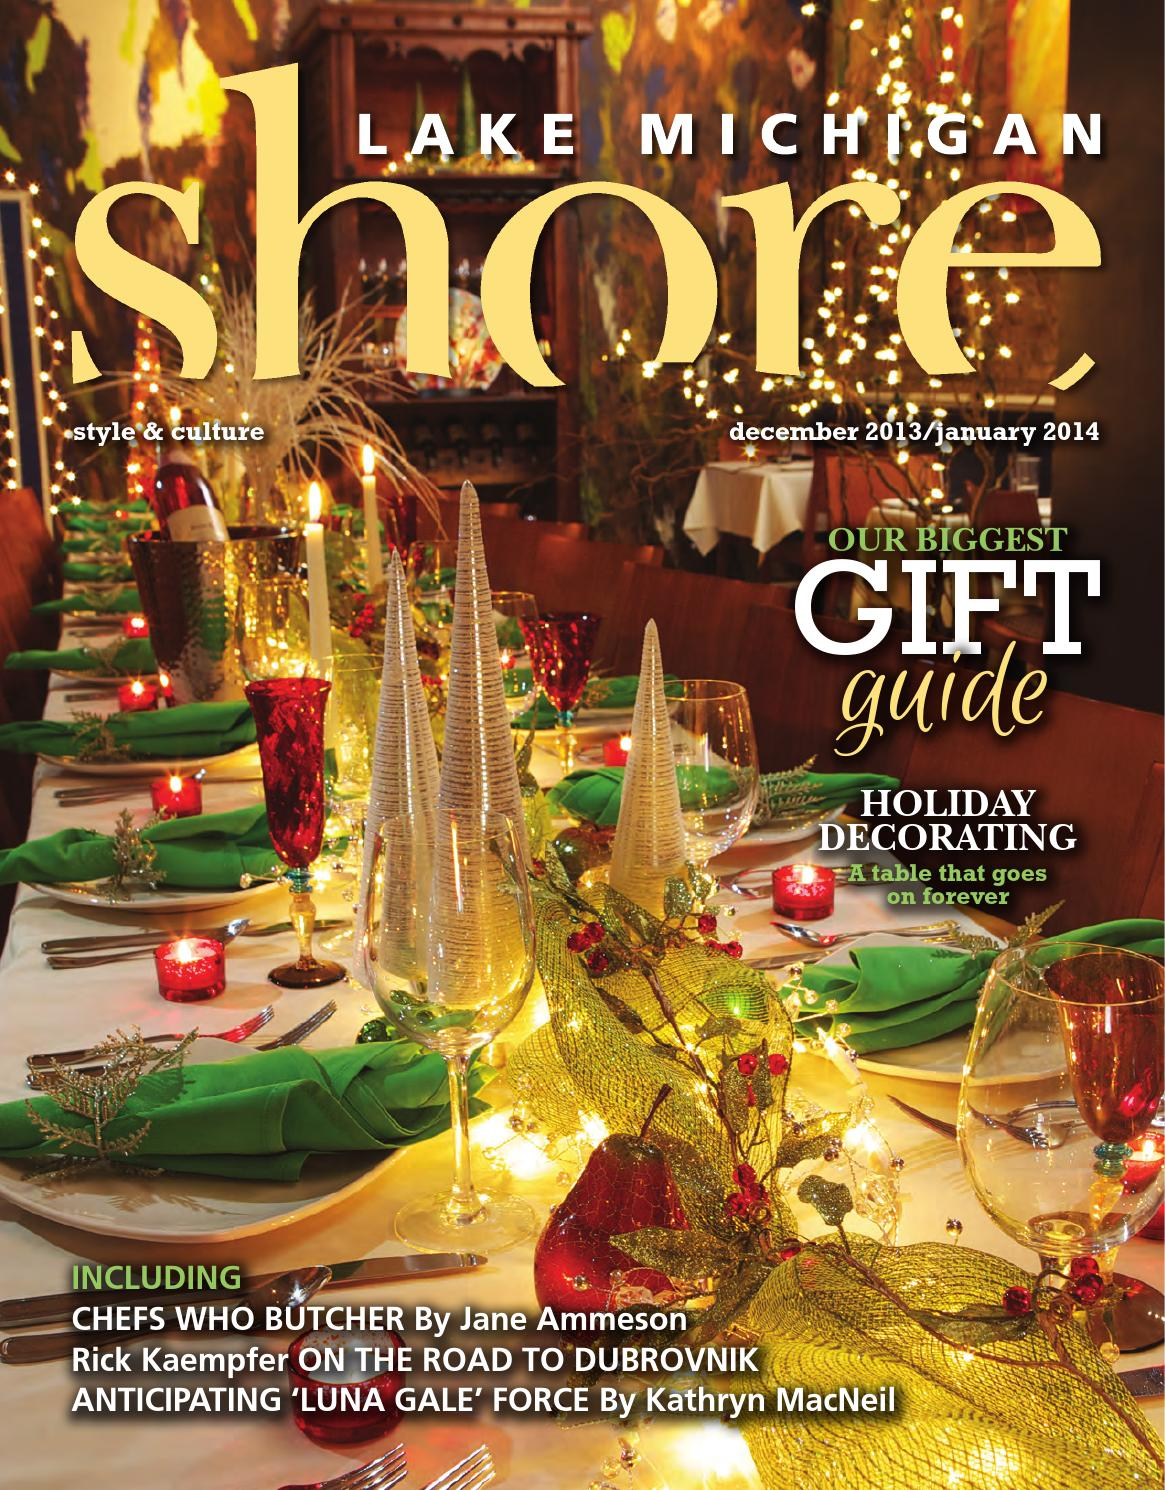 gngerbread chrstmas cubcle chrstmas offce decor.htm dec 2013 jan 2014 shore by the times of nwi issuu  shore by the times of nwi